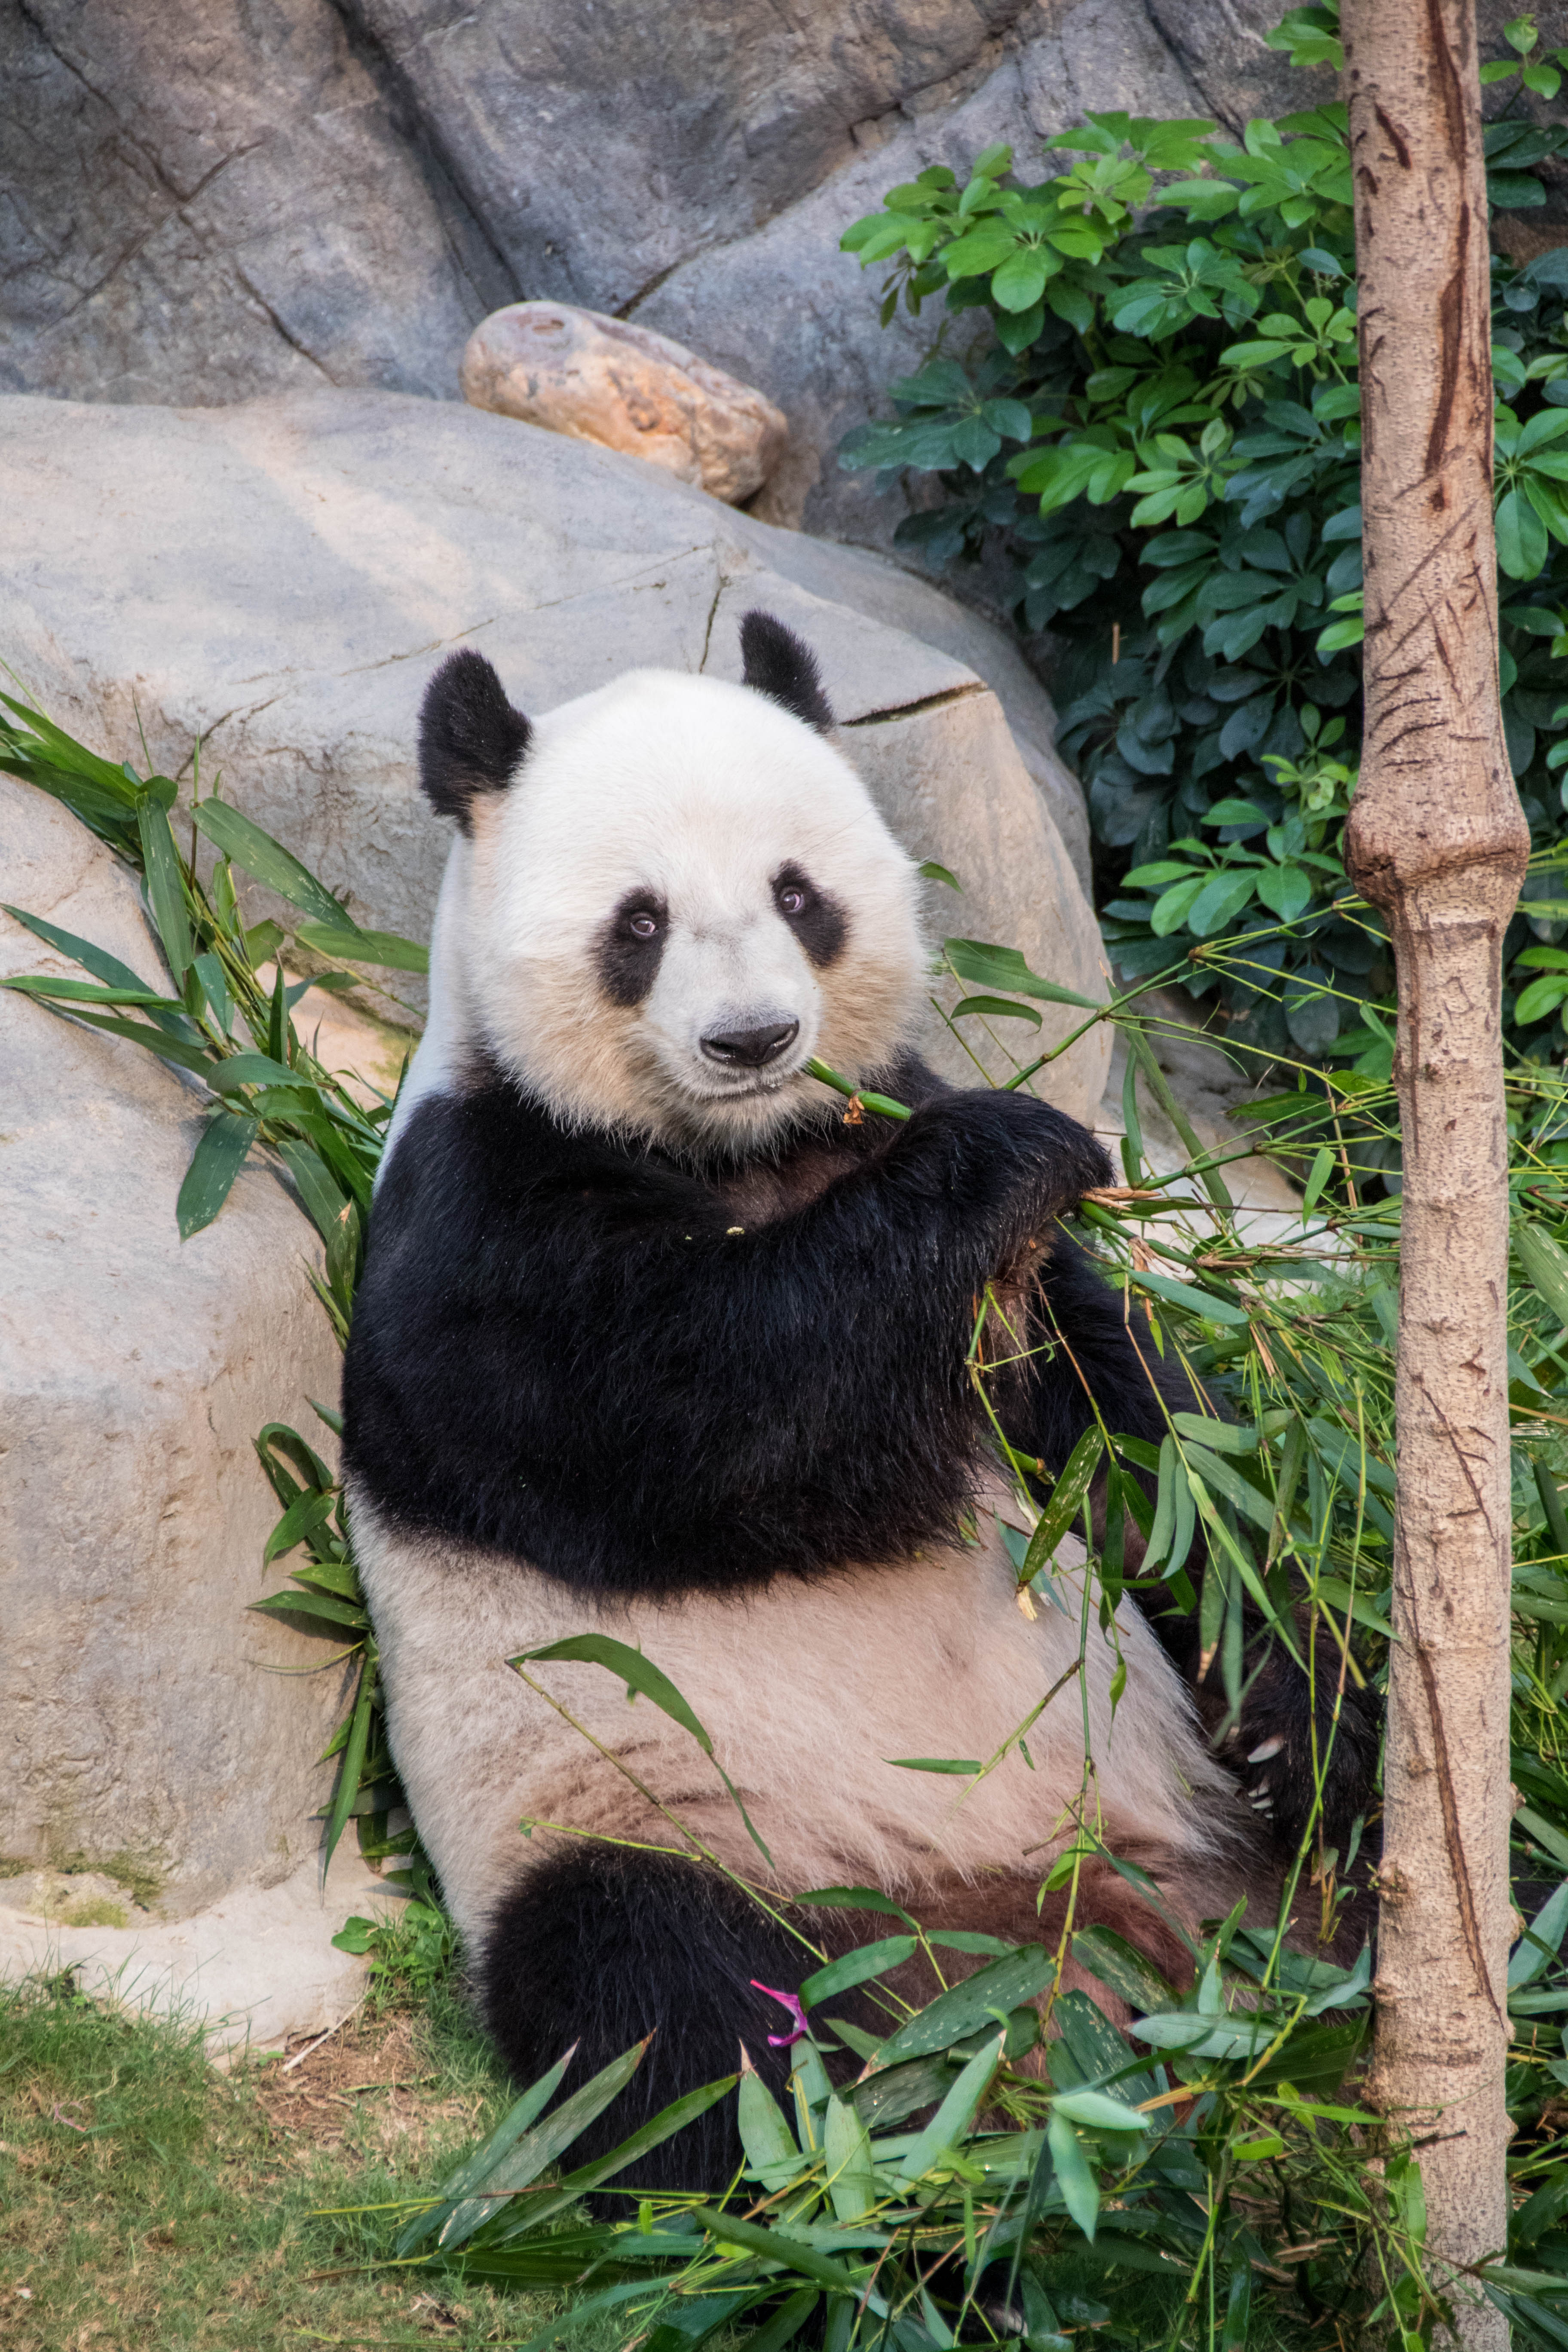 101664 download wallpaper Animals, Panda, Bamboo, Branches, Animal screensavers and pictures for free